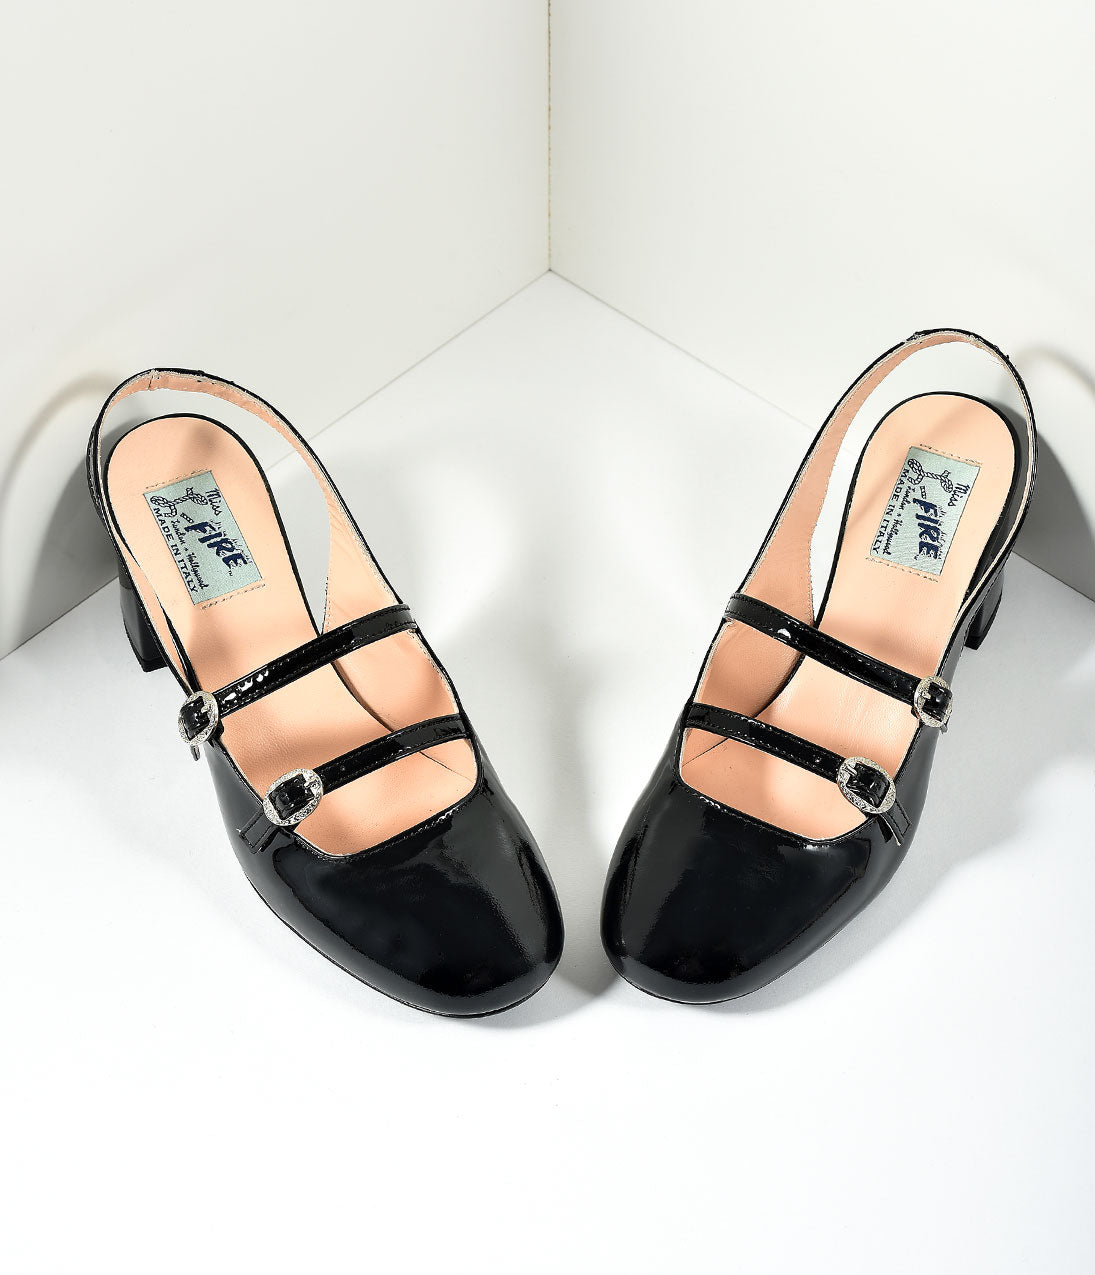 60s Shoes, Boots | 70s Shoes, Platforms, Boots Miss L Fire 1960s Style Black Patent Leather Mary Jane Open Dolly Heels Shoes $195.00 AT vintagedancer.com